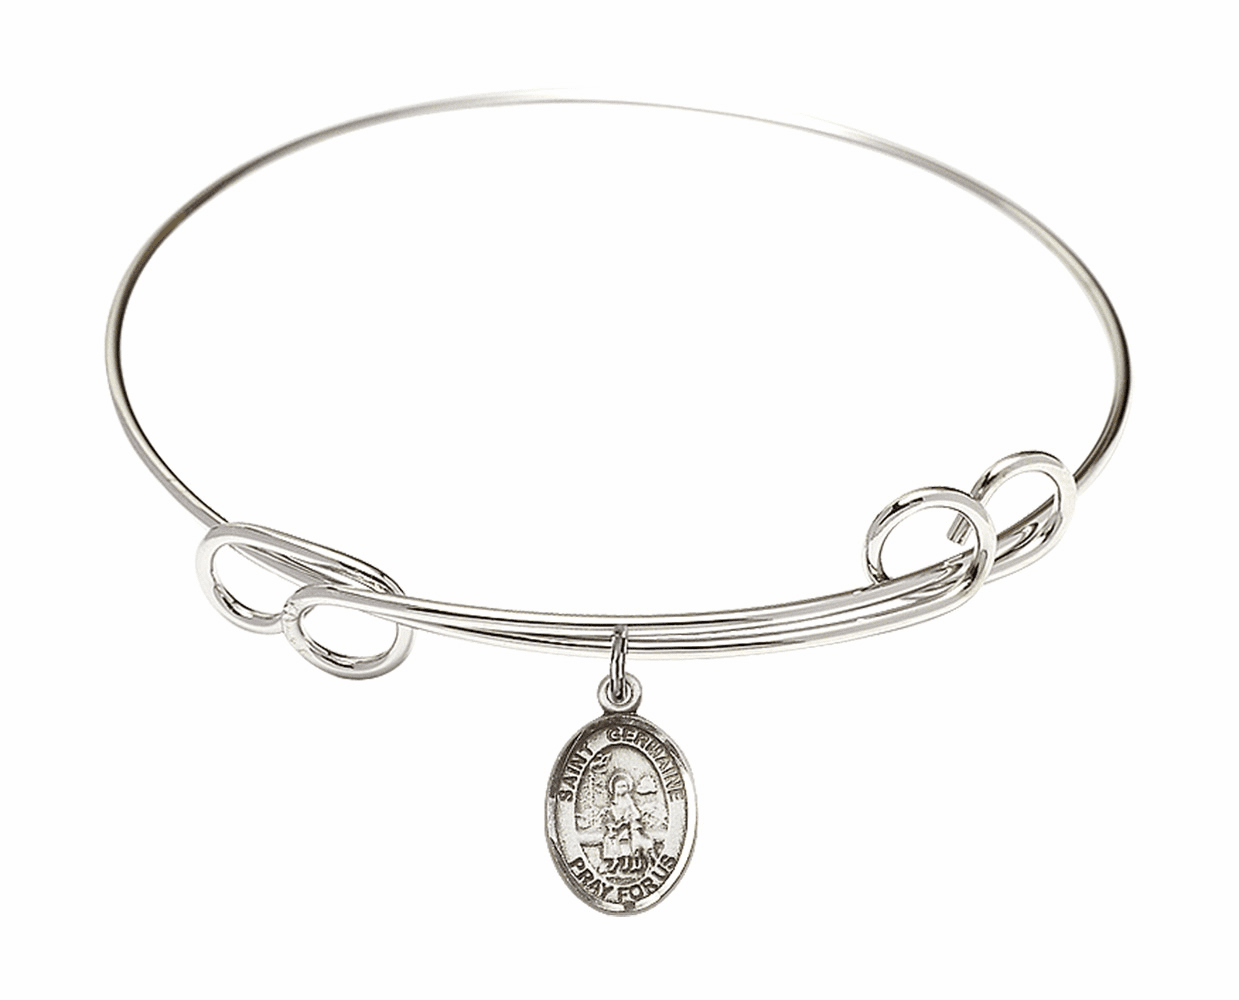 Round Loop St Germaine Cousin Bangle Charm Bracelet by Bliss